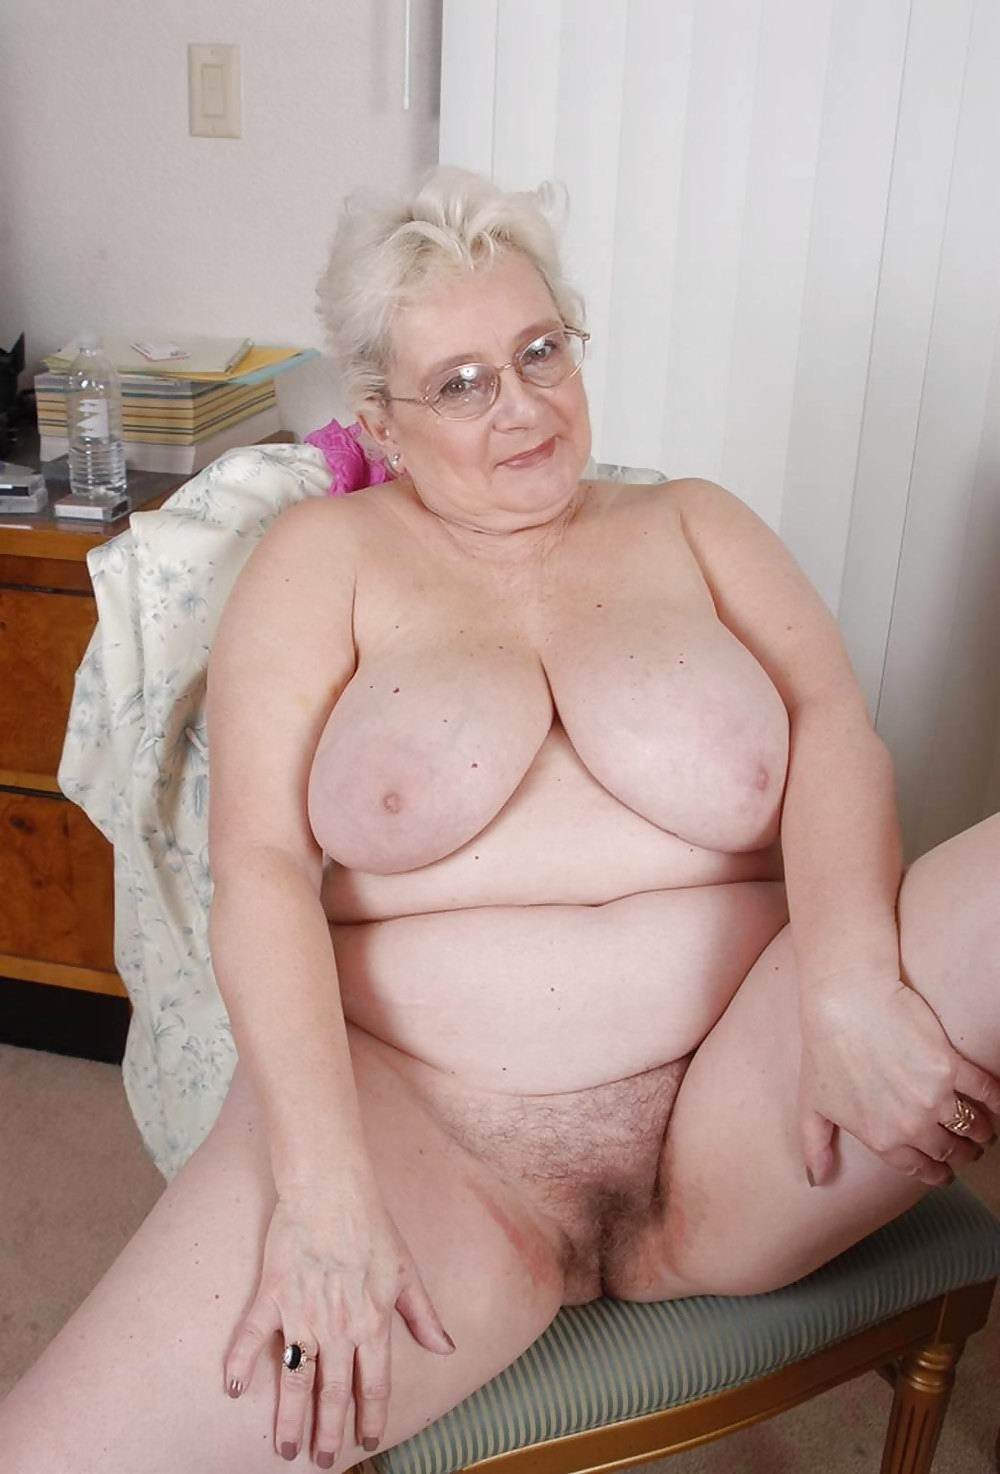 Consider, that Fat old granny naked